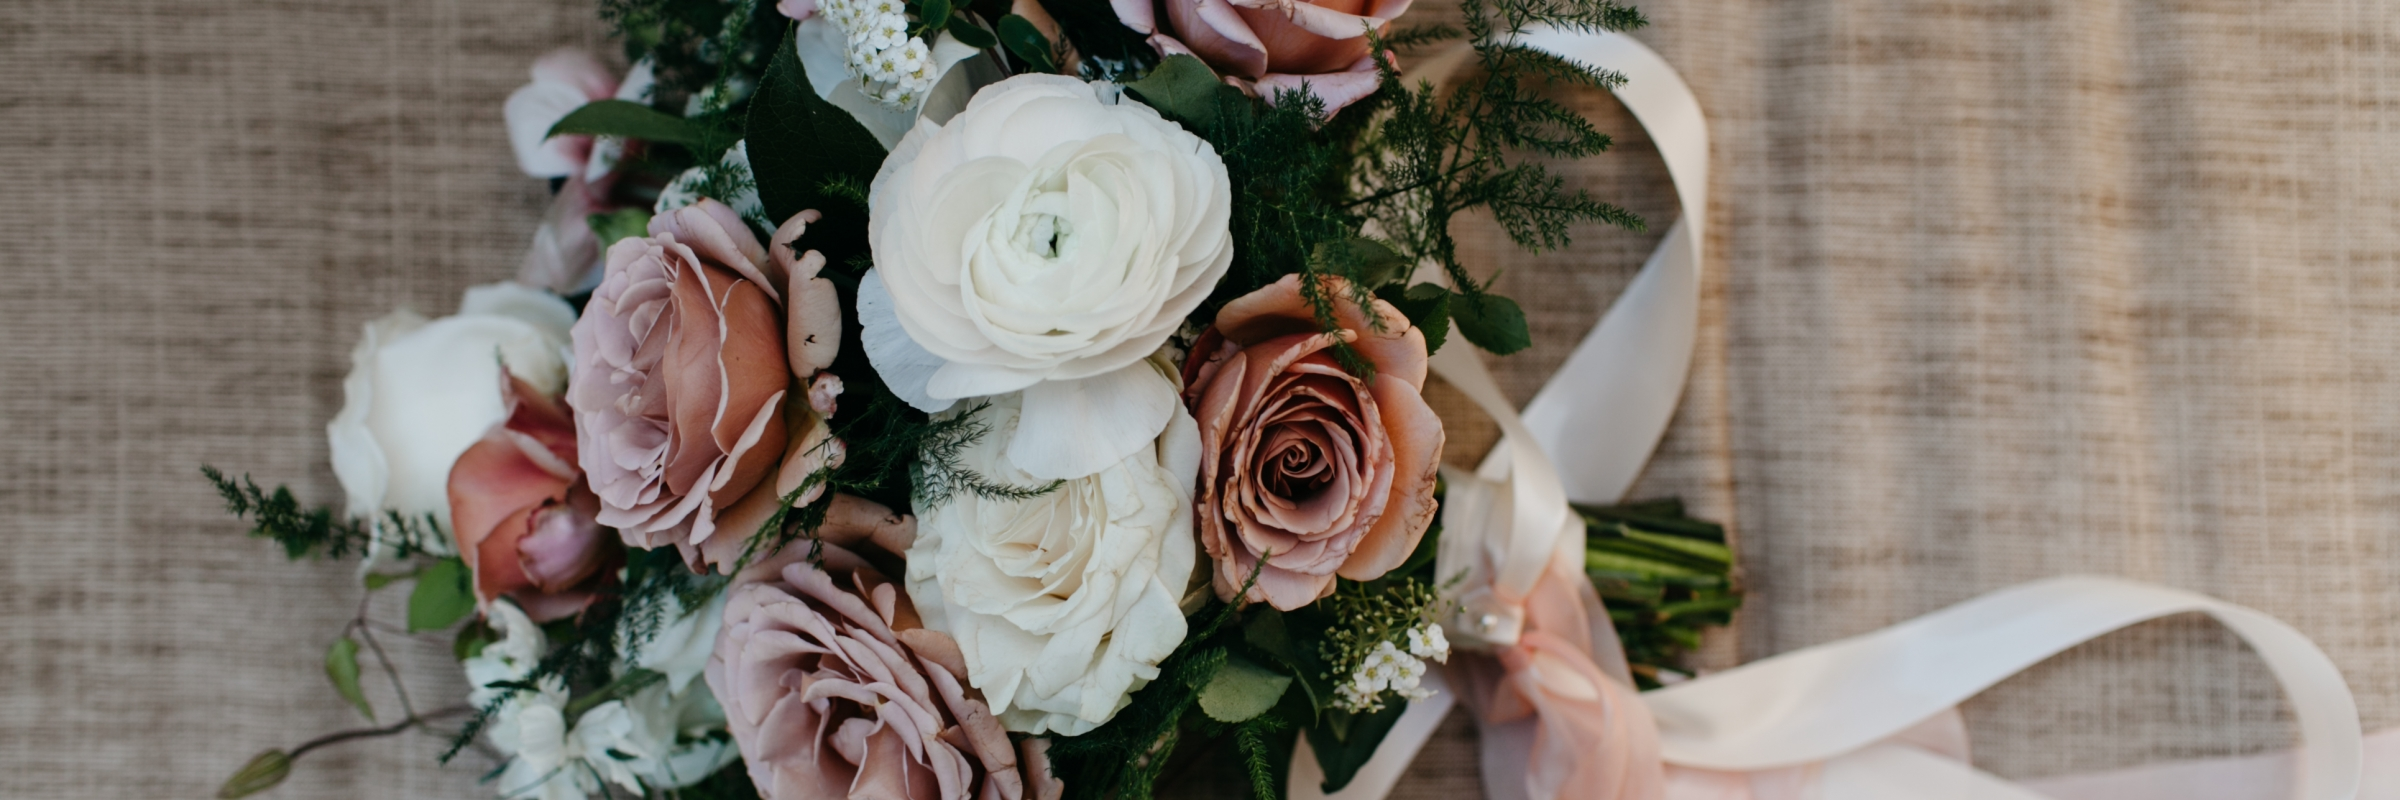 Wedding bouquet in dusty pink and white from Seattle wedding at Sodo Park with Perfectly Posh Events, Seattle + Portland wedding planner | Photo by Kate Price Photography